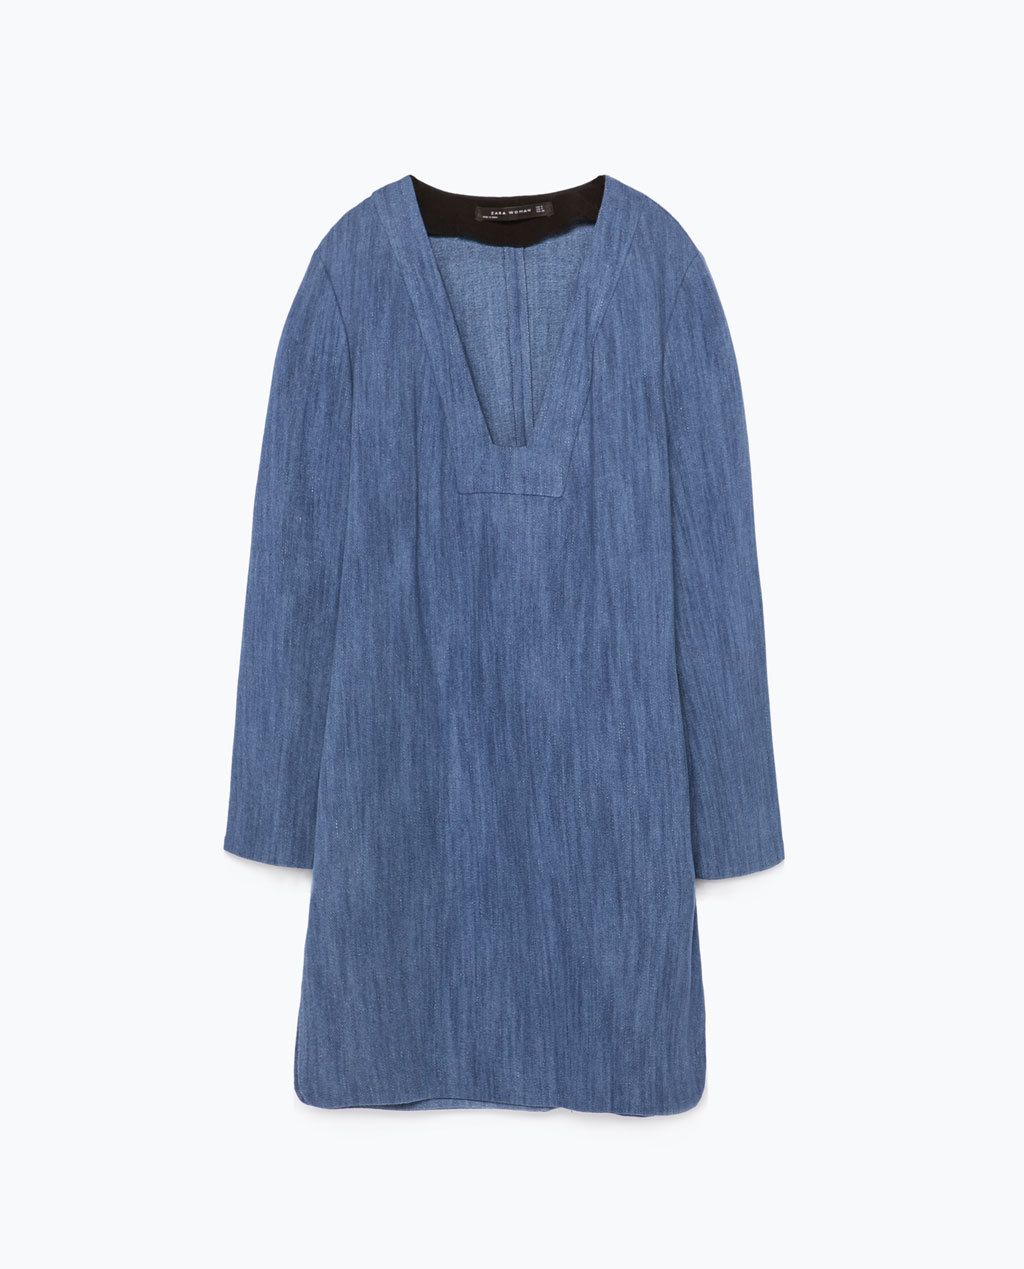 Bell Sleeve Tunic - style: tunic; length: mid thigh; neckline: low v-neck; pattern: plain; predominant colour: denim; occasions: casual, creative work; fit: straight cut; sleeve length: long sleeve; sleeve style: standard; texture group: denim; pattern type: fabric; trends: alternative denim; season: s/s 2015; wardrobe: basic